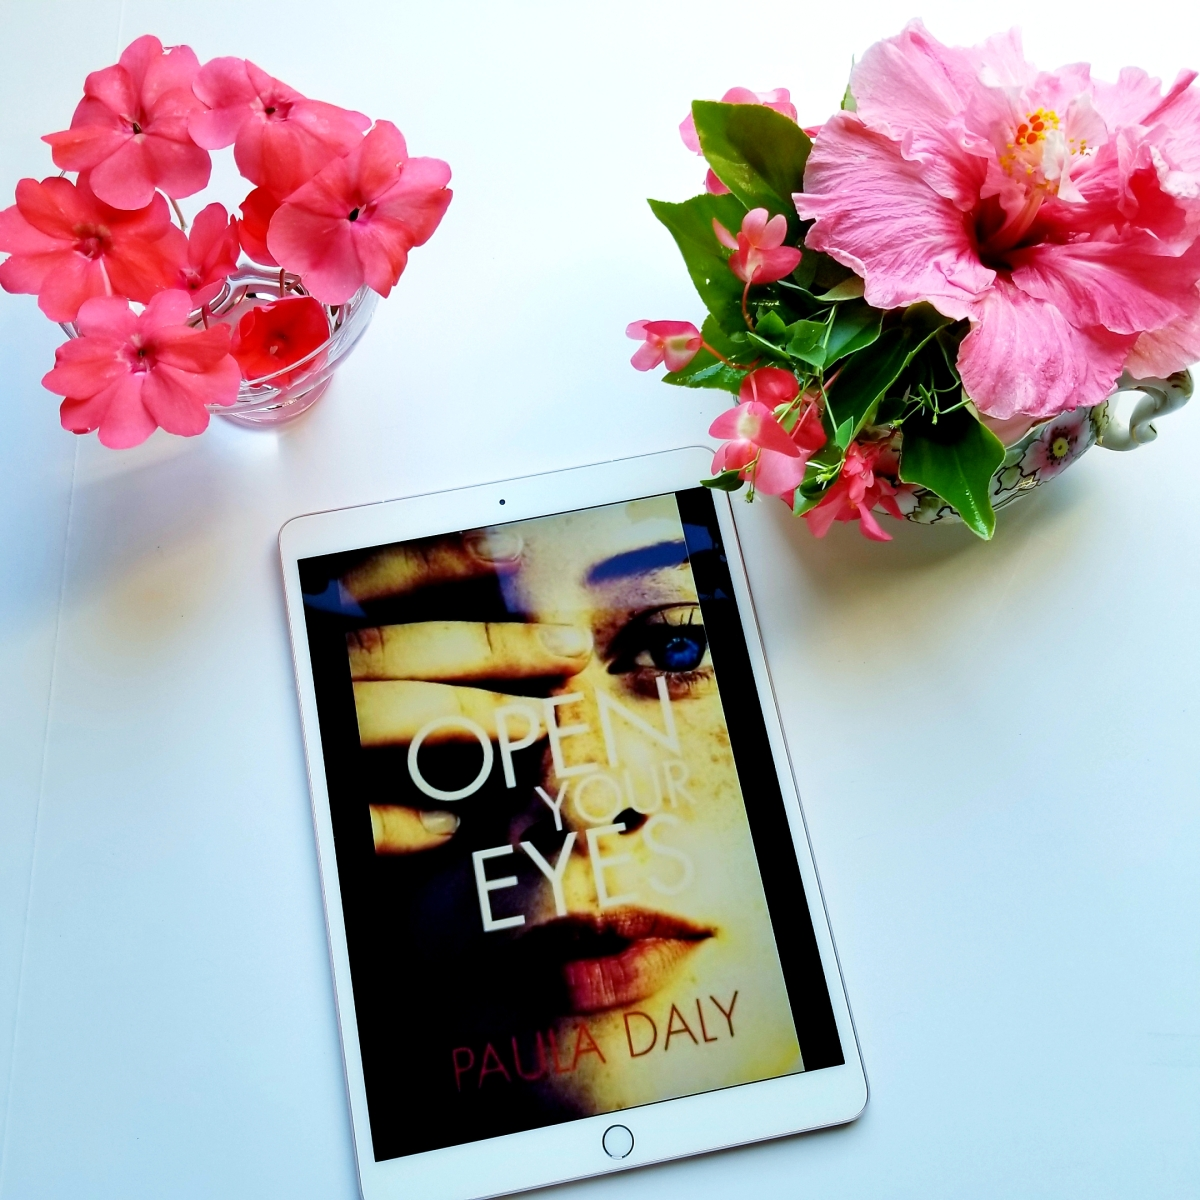 Open Your Eyes by Paula Daly #bookreview #tarheelreader #thropenyoureyes @pauladalyauthor @groveatlantic #openyoureyes